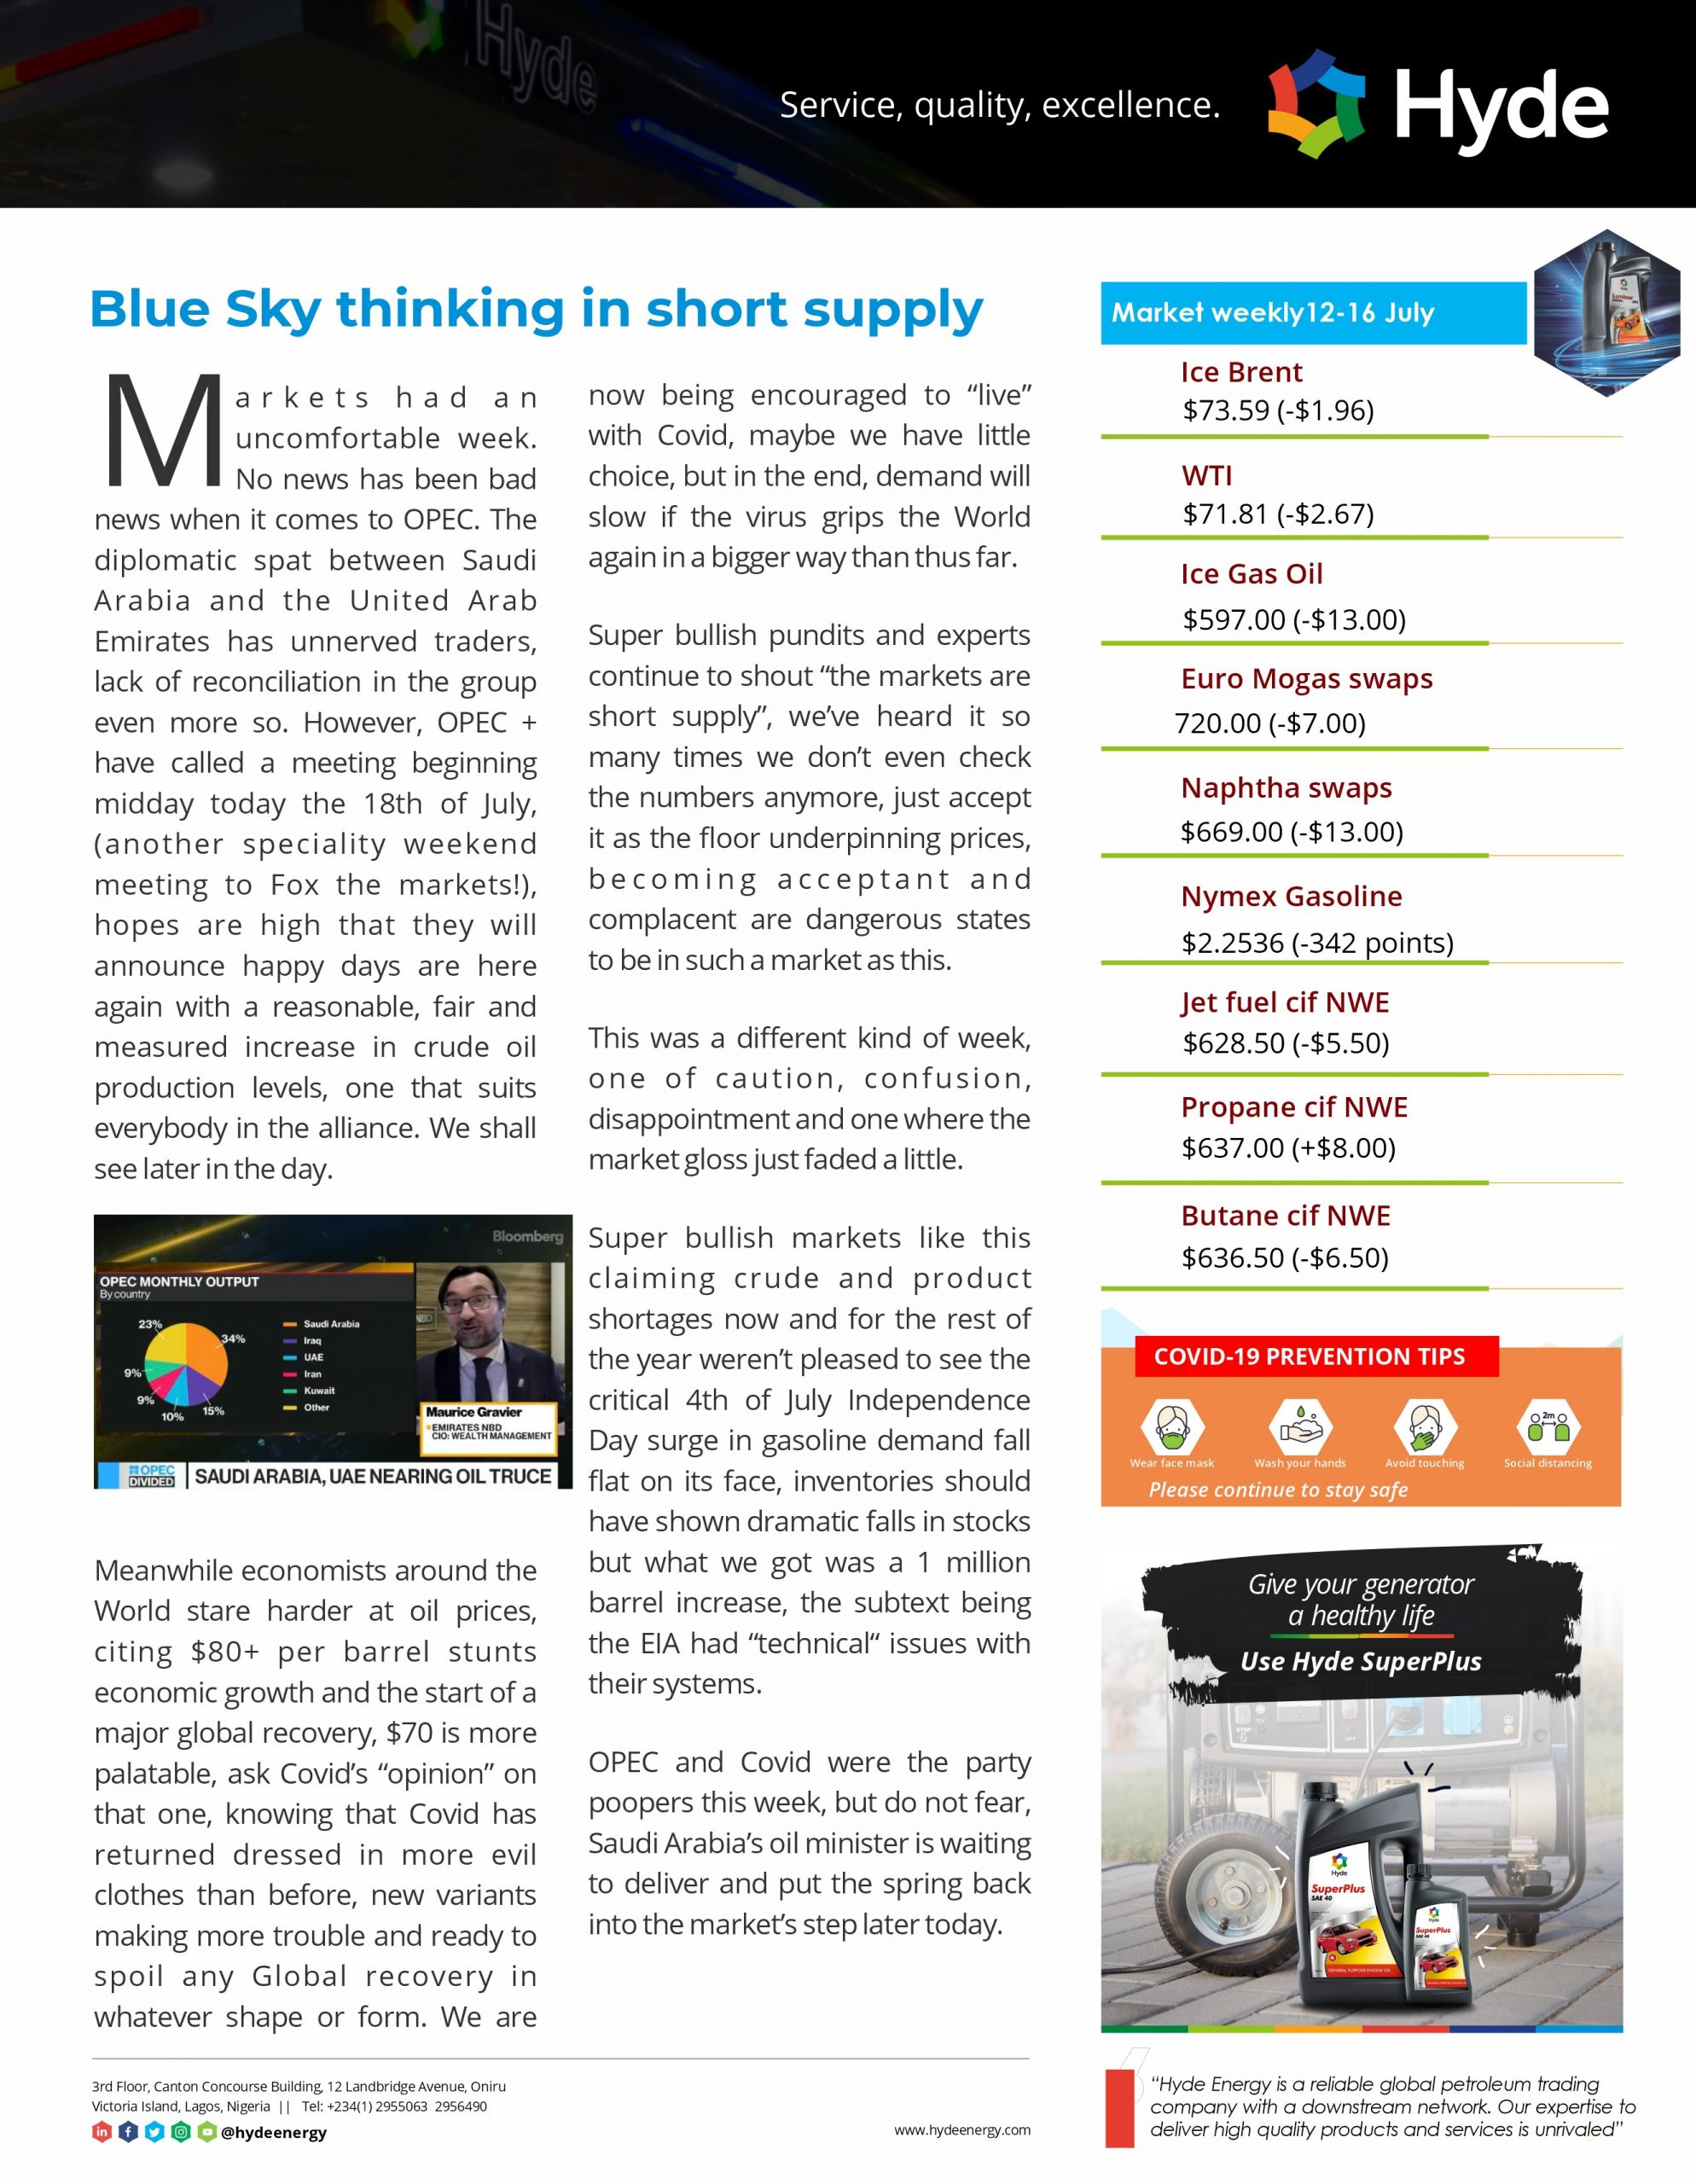 Hyde oil and gas trading newsletter